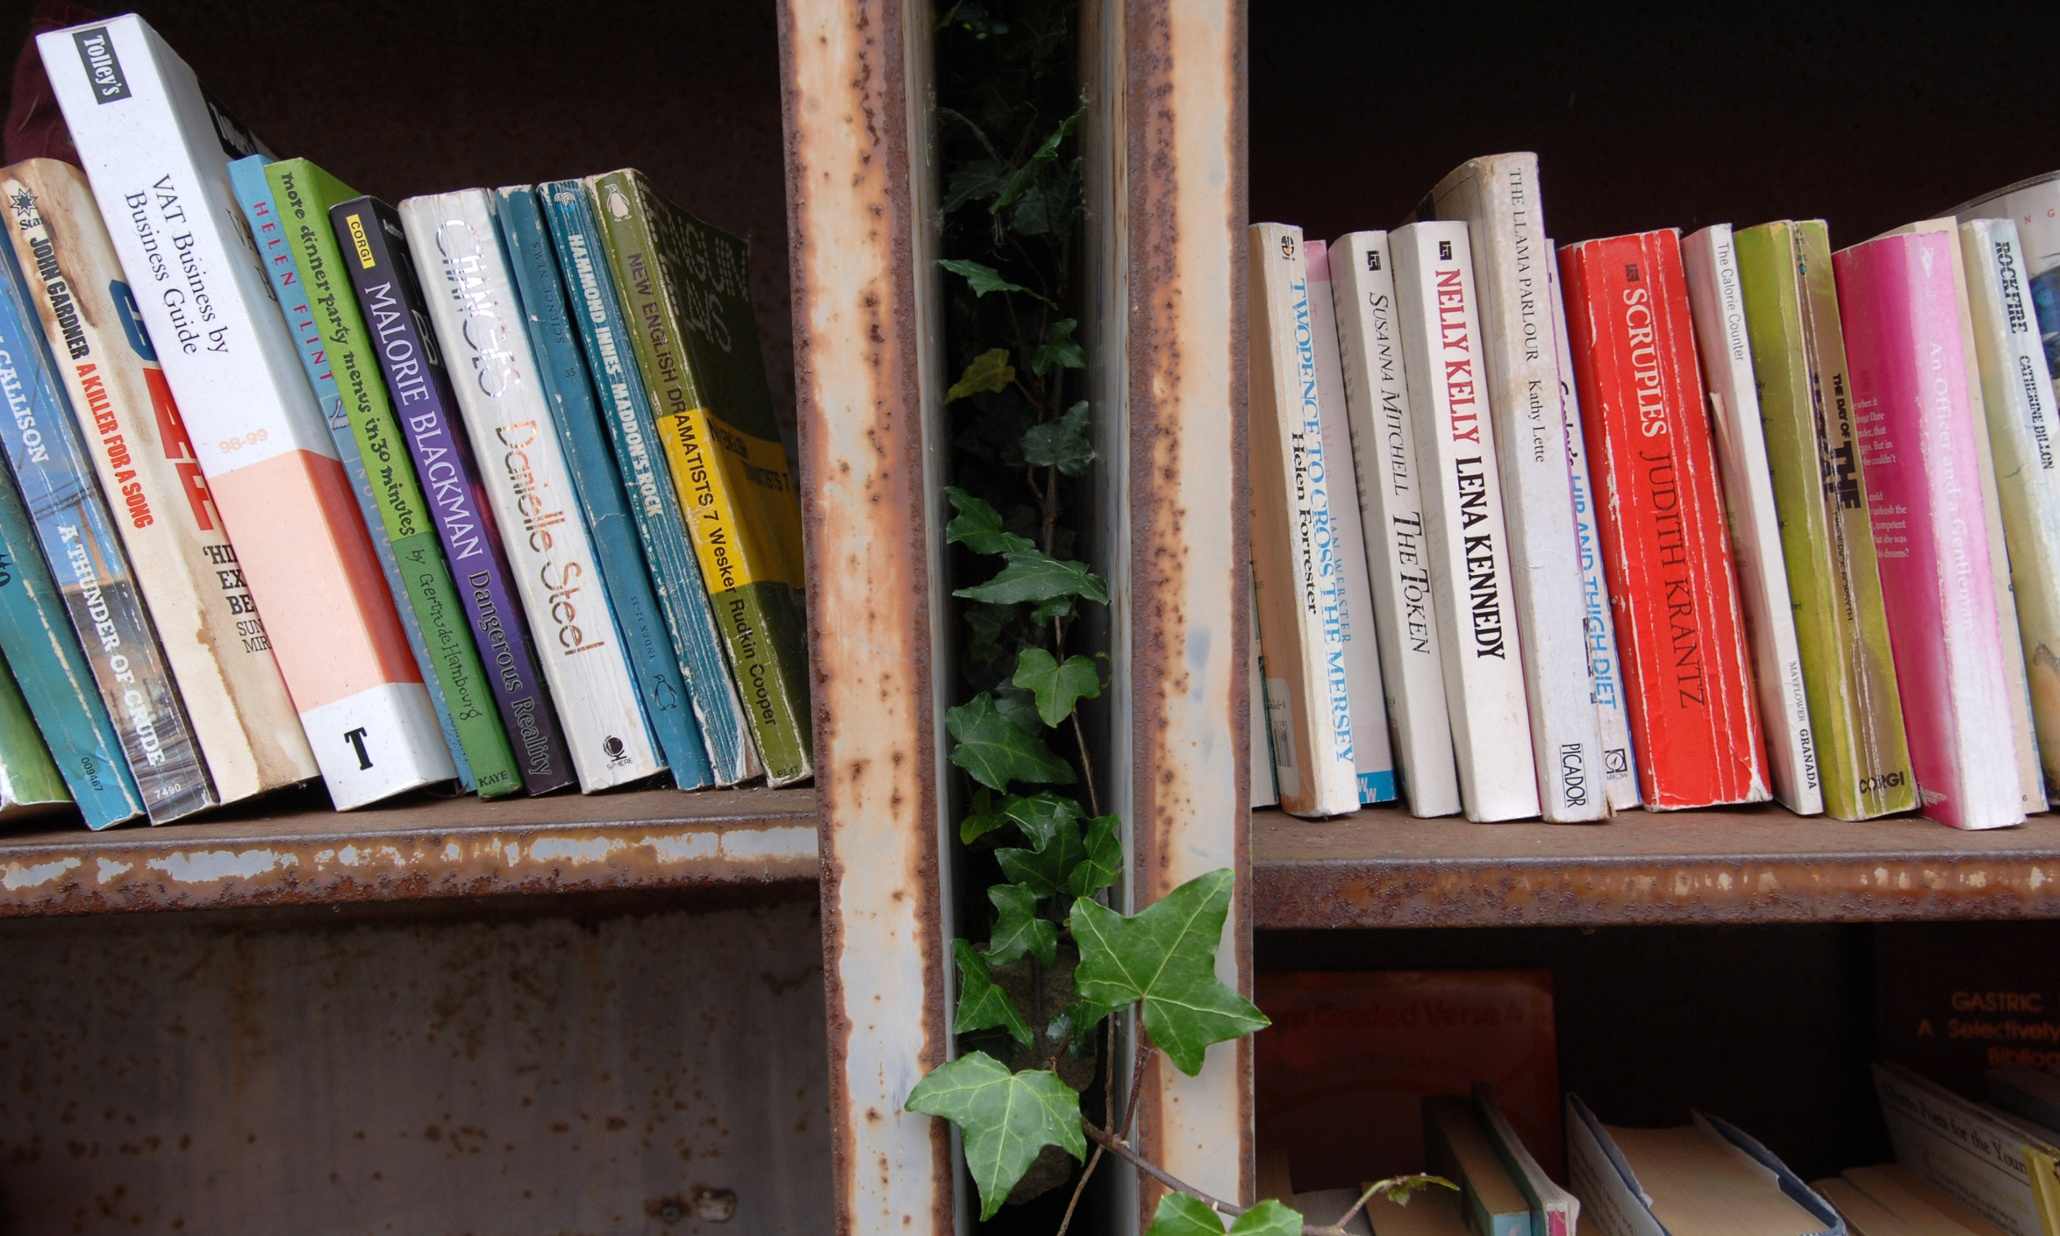 Can you really make a living by selling used books on Amazon for a penny?